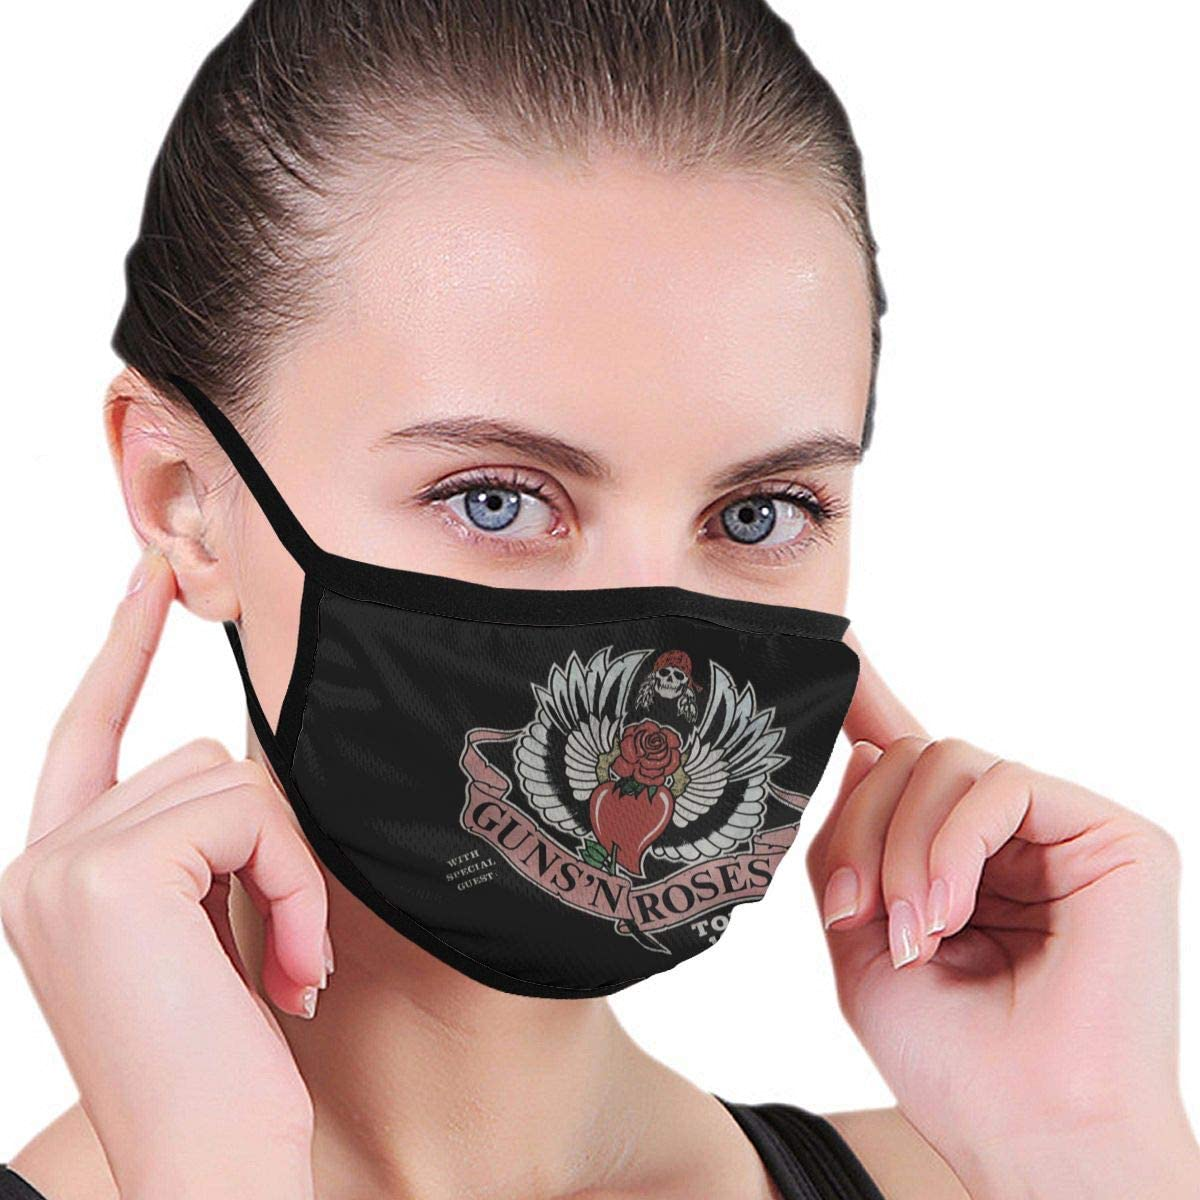 Zhengyu G-U-N-S- N -R-O-S-E Face Mouth Protect Comfy Breathable Safety Air Fog Outdoor Fashion Half Face Face Protections - for Man and Woman